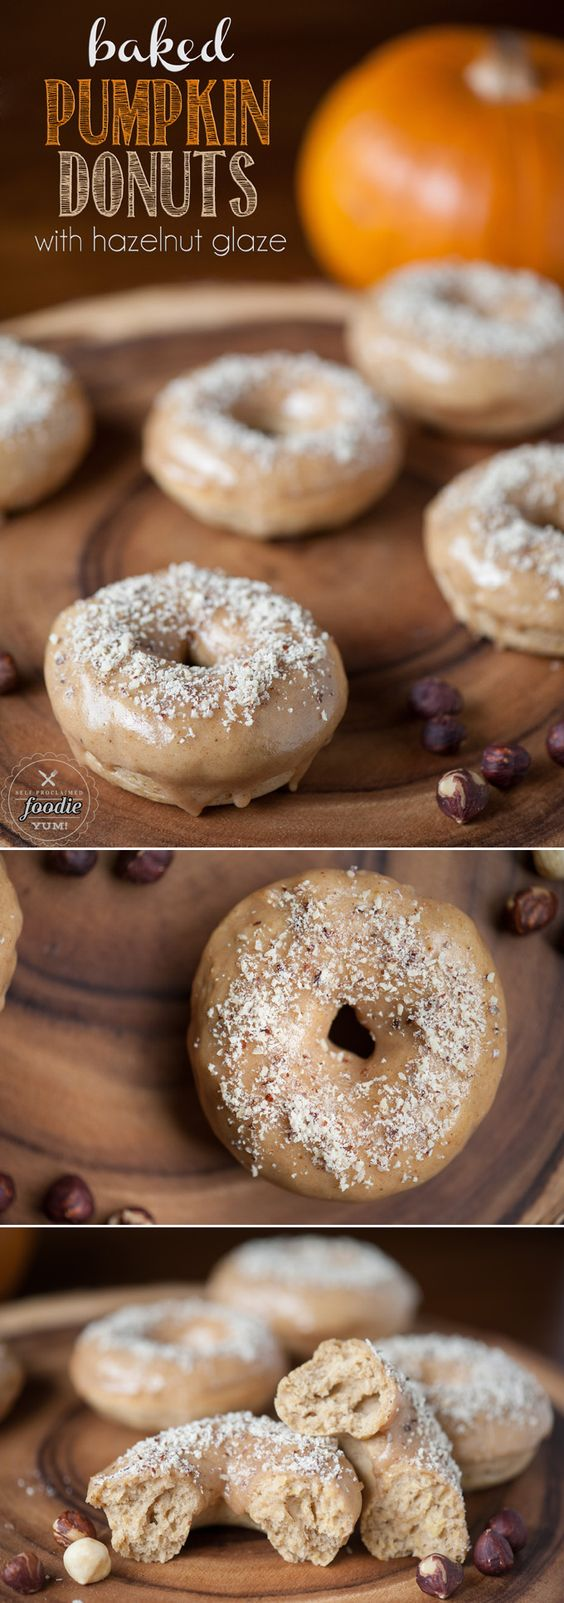 These Baked Pumpkin Donuts with hazelnut glaze are simple to make and ...